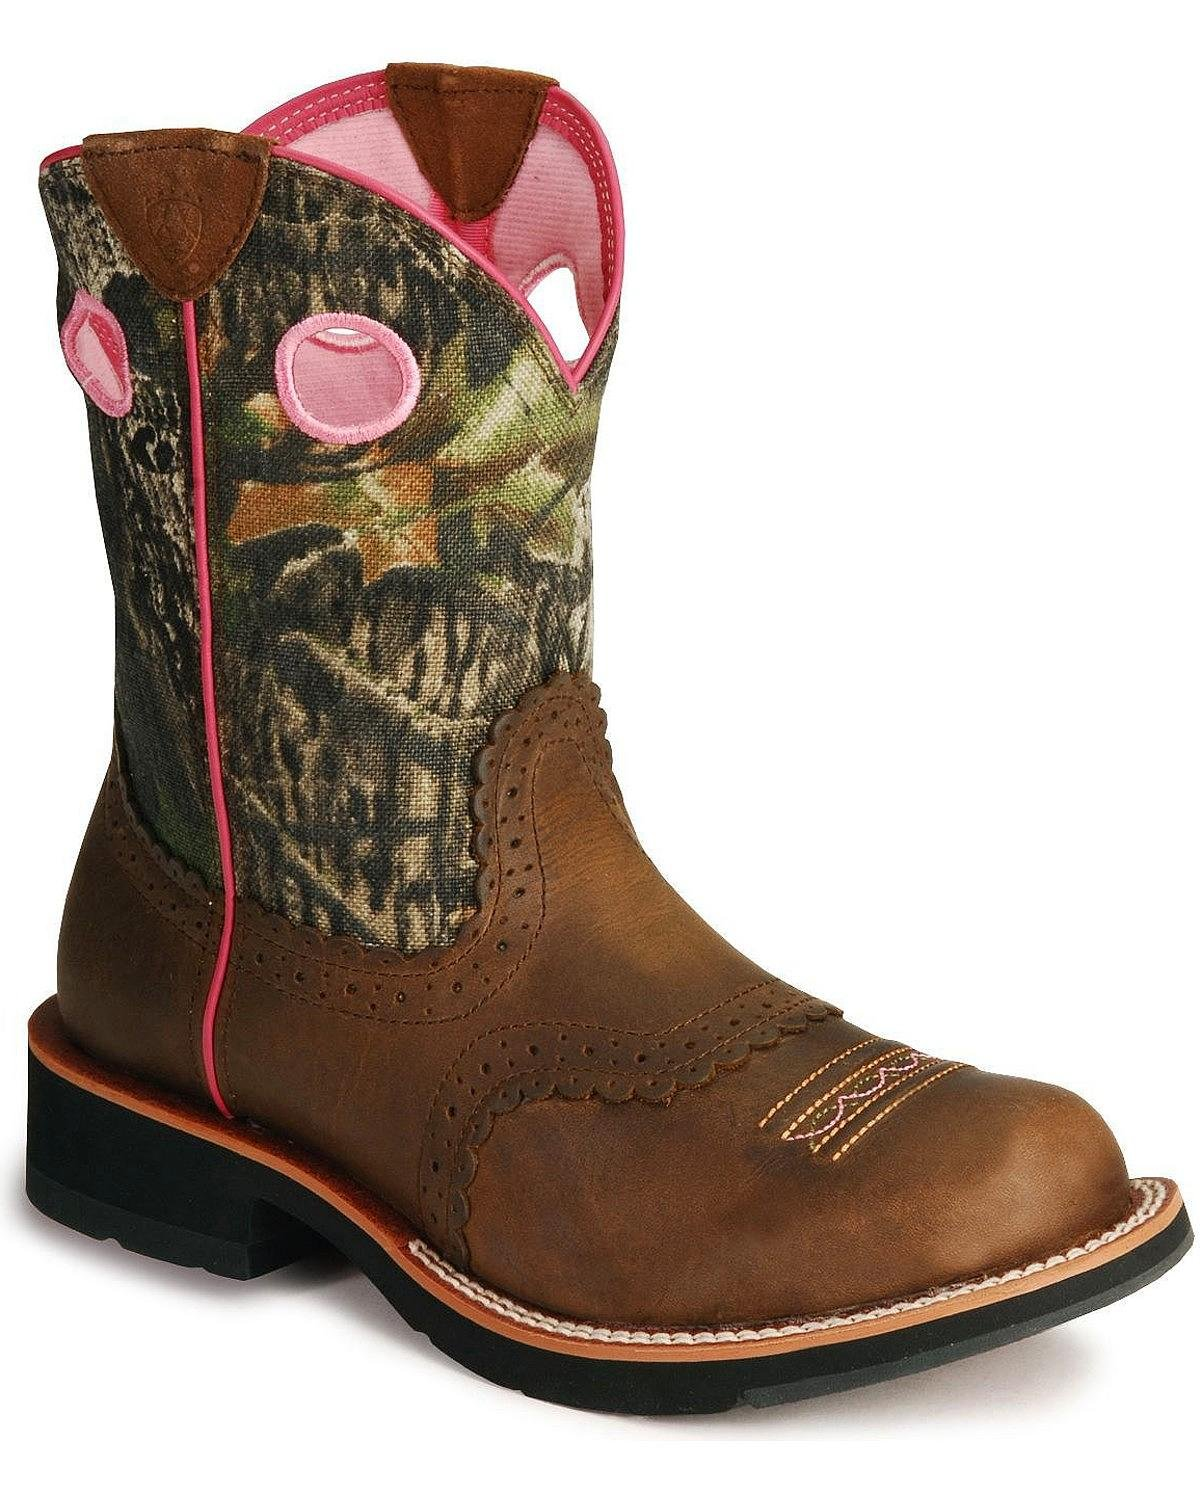 Ariat Women's Fat Camo Cowgirl Boot Distressed 7.5 M US